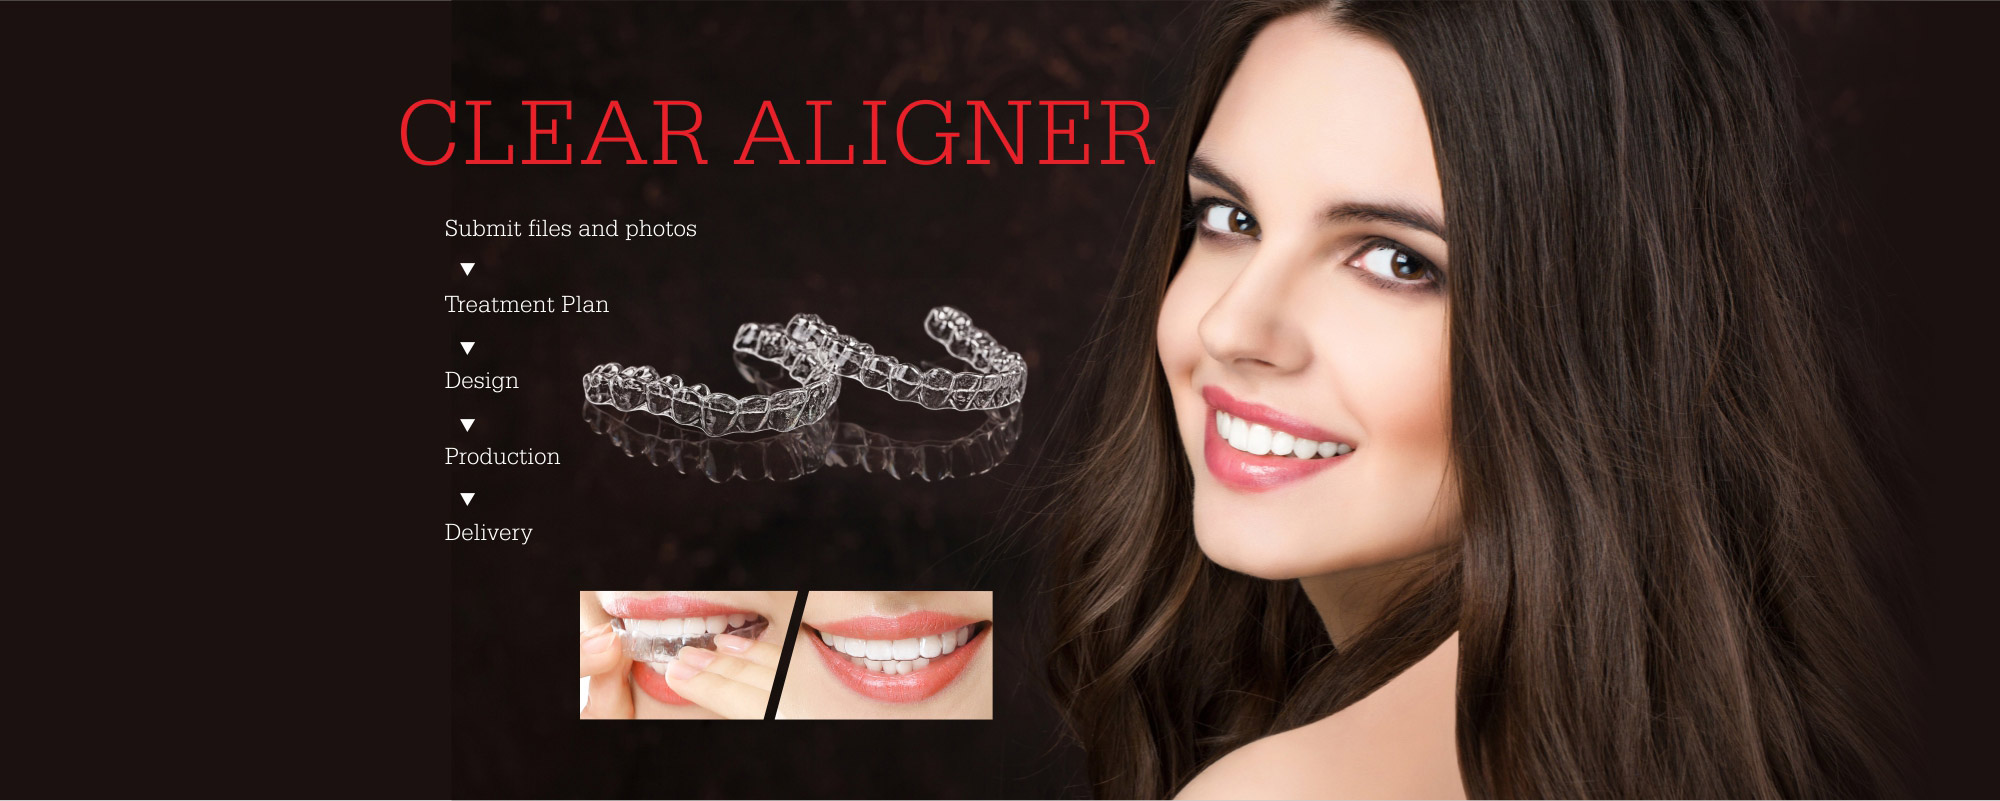 CLEAR ALIGNER,Submit files and photos,Treatment Plan, Design, Production ,Delivery